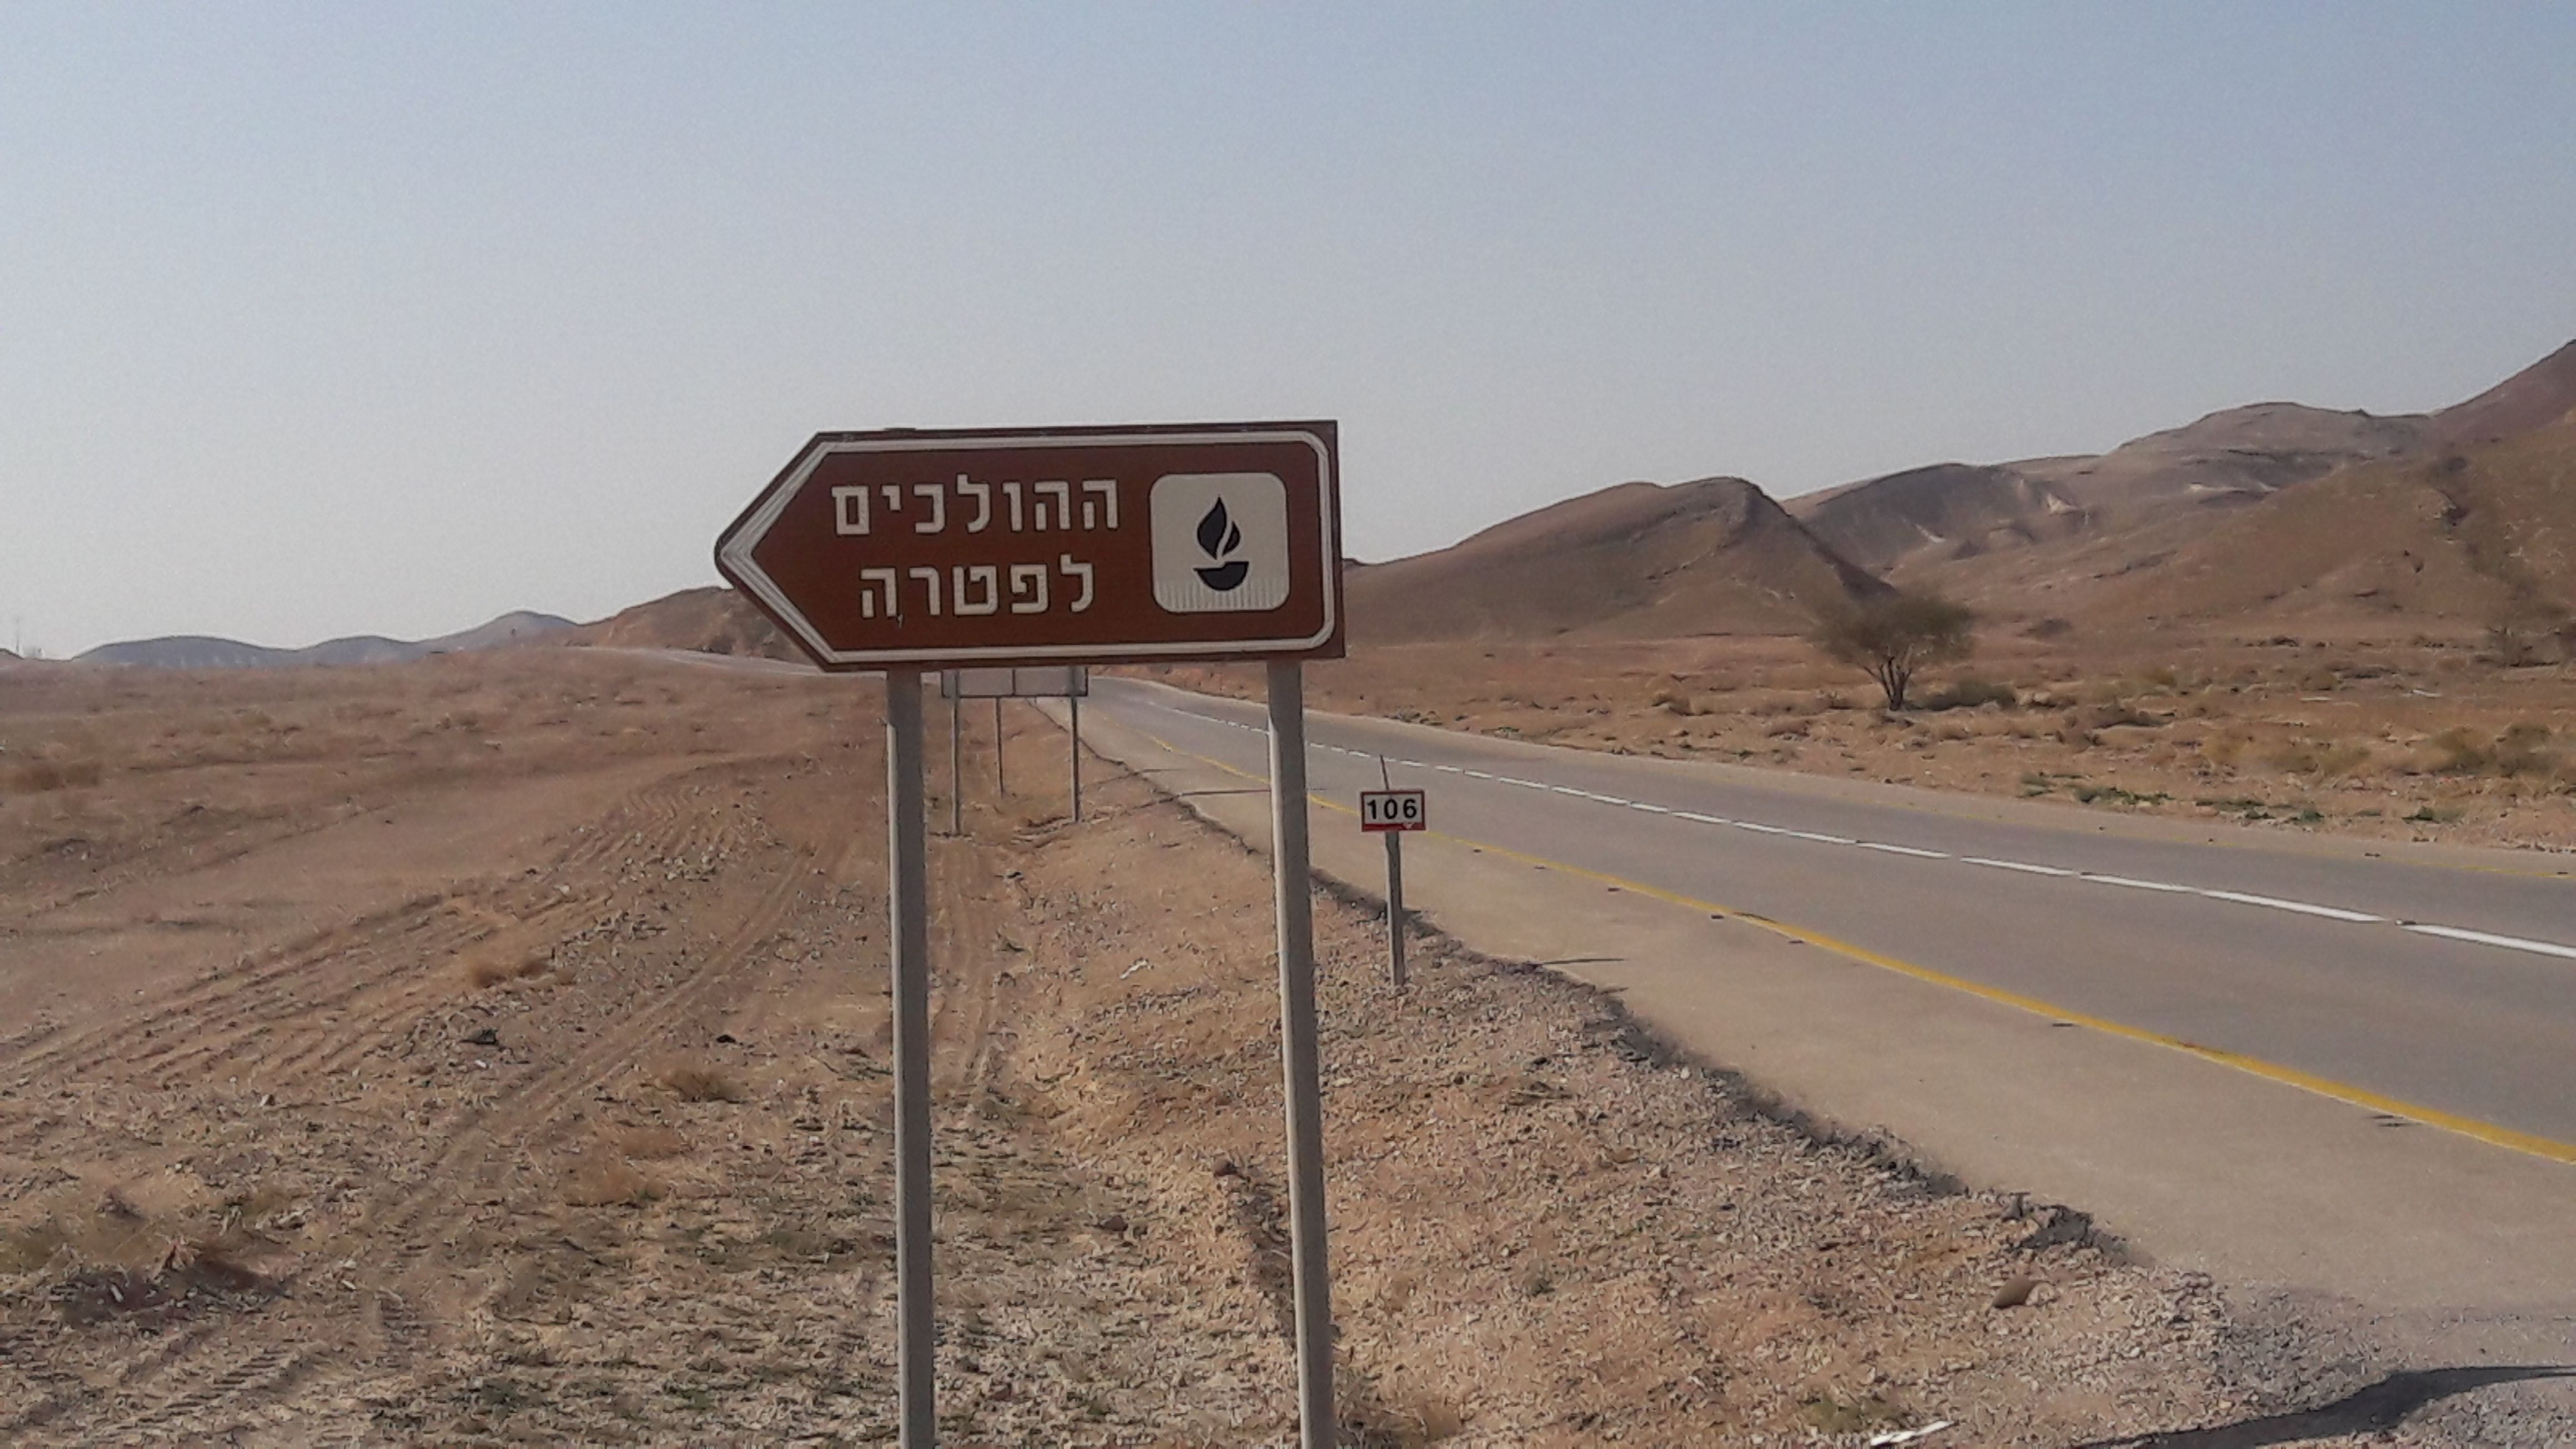 Pin By Rina Kuvent On Lsrael Highway Signs Road Highway